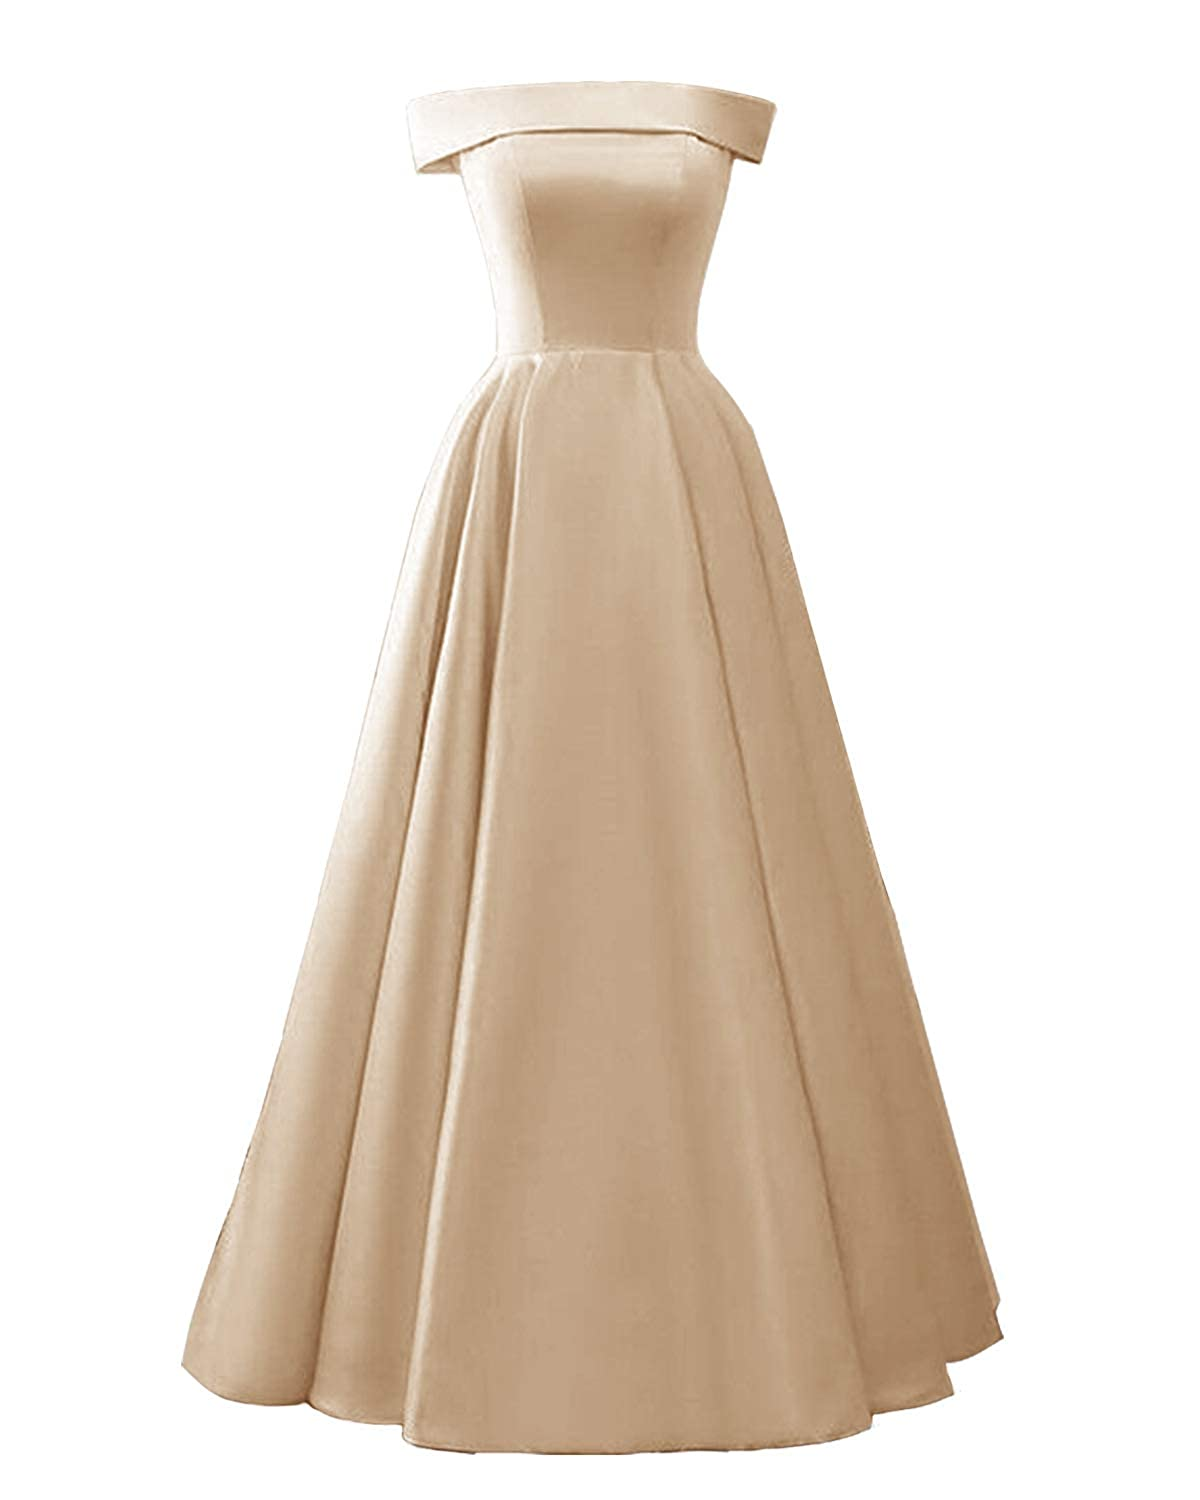 Champagne CCBubble Womens Long Satin Prom Dresses Off Shoulder Formal Evening Wedding Party Dress